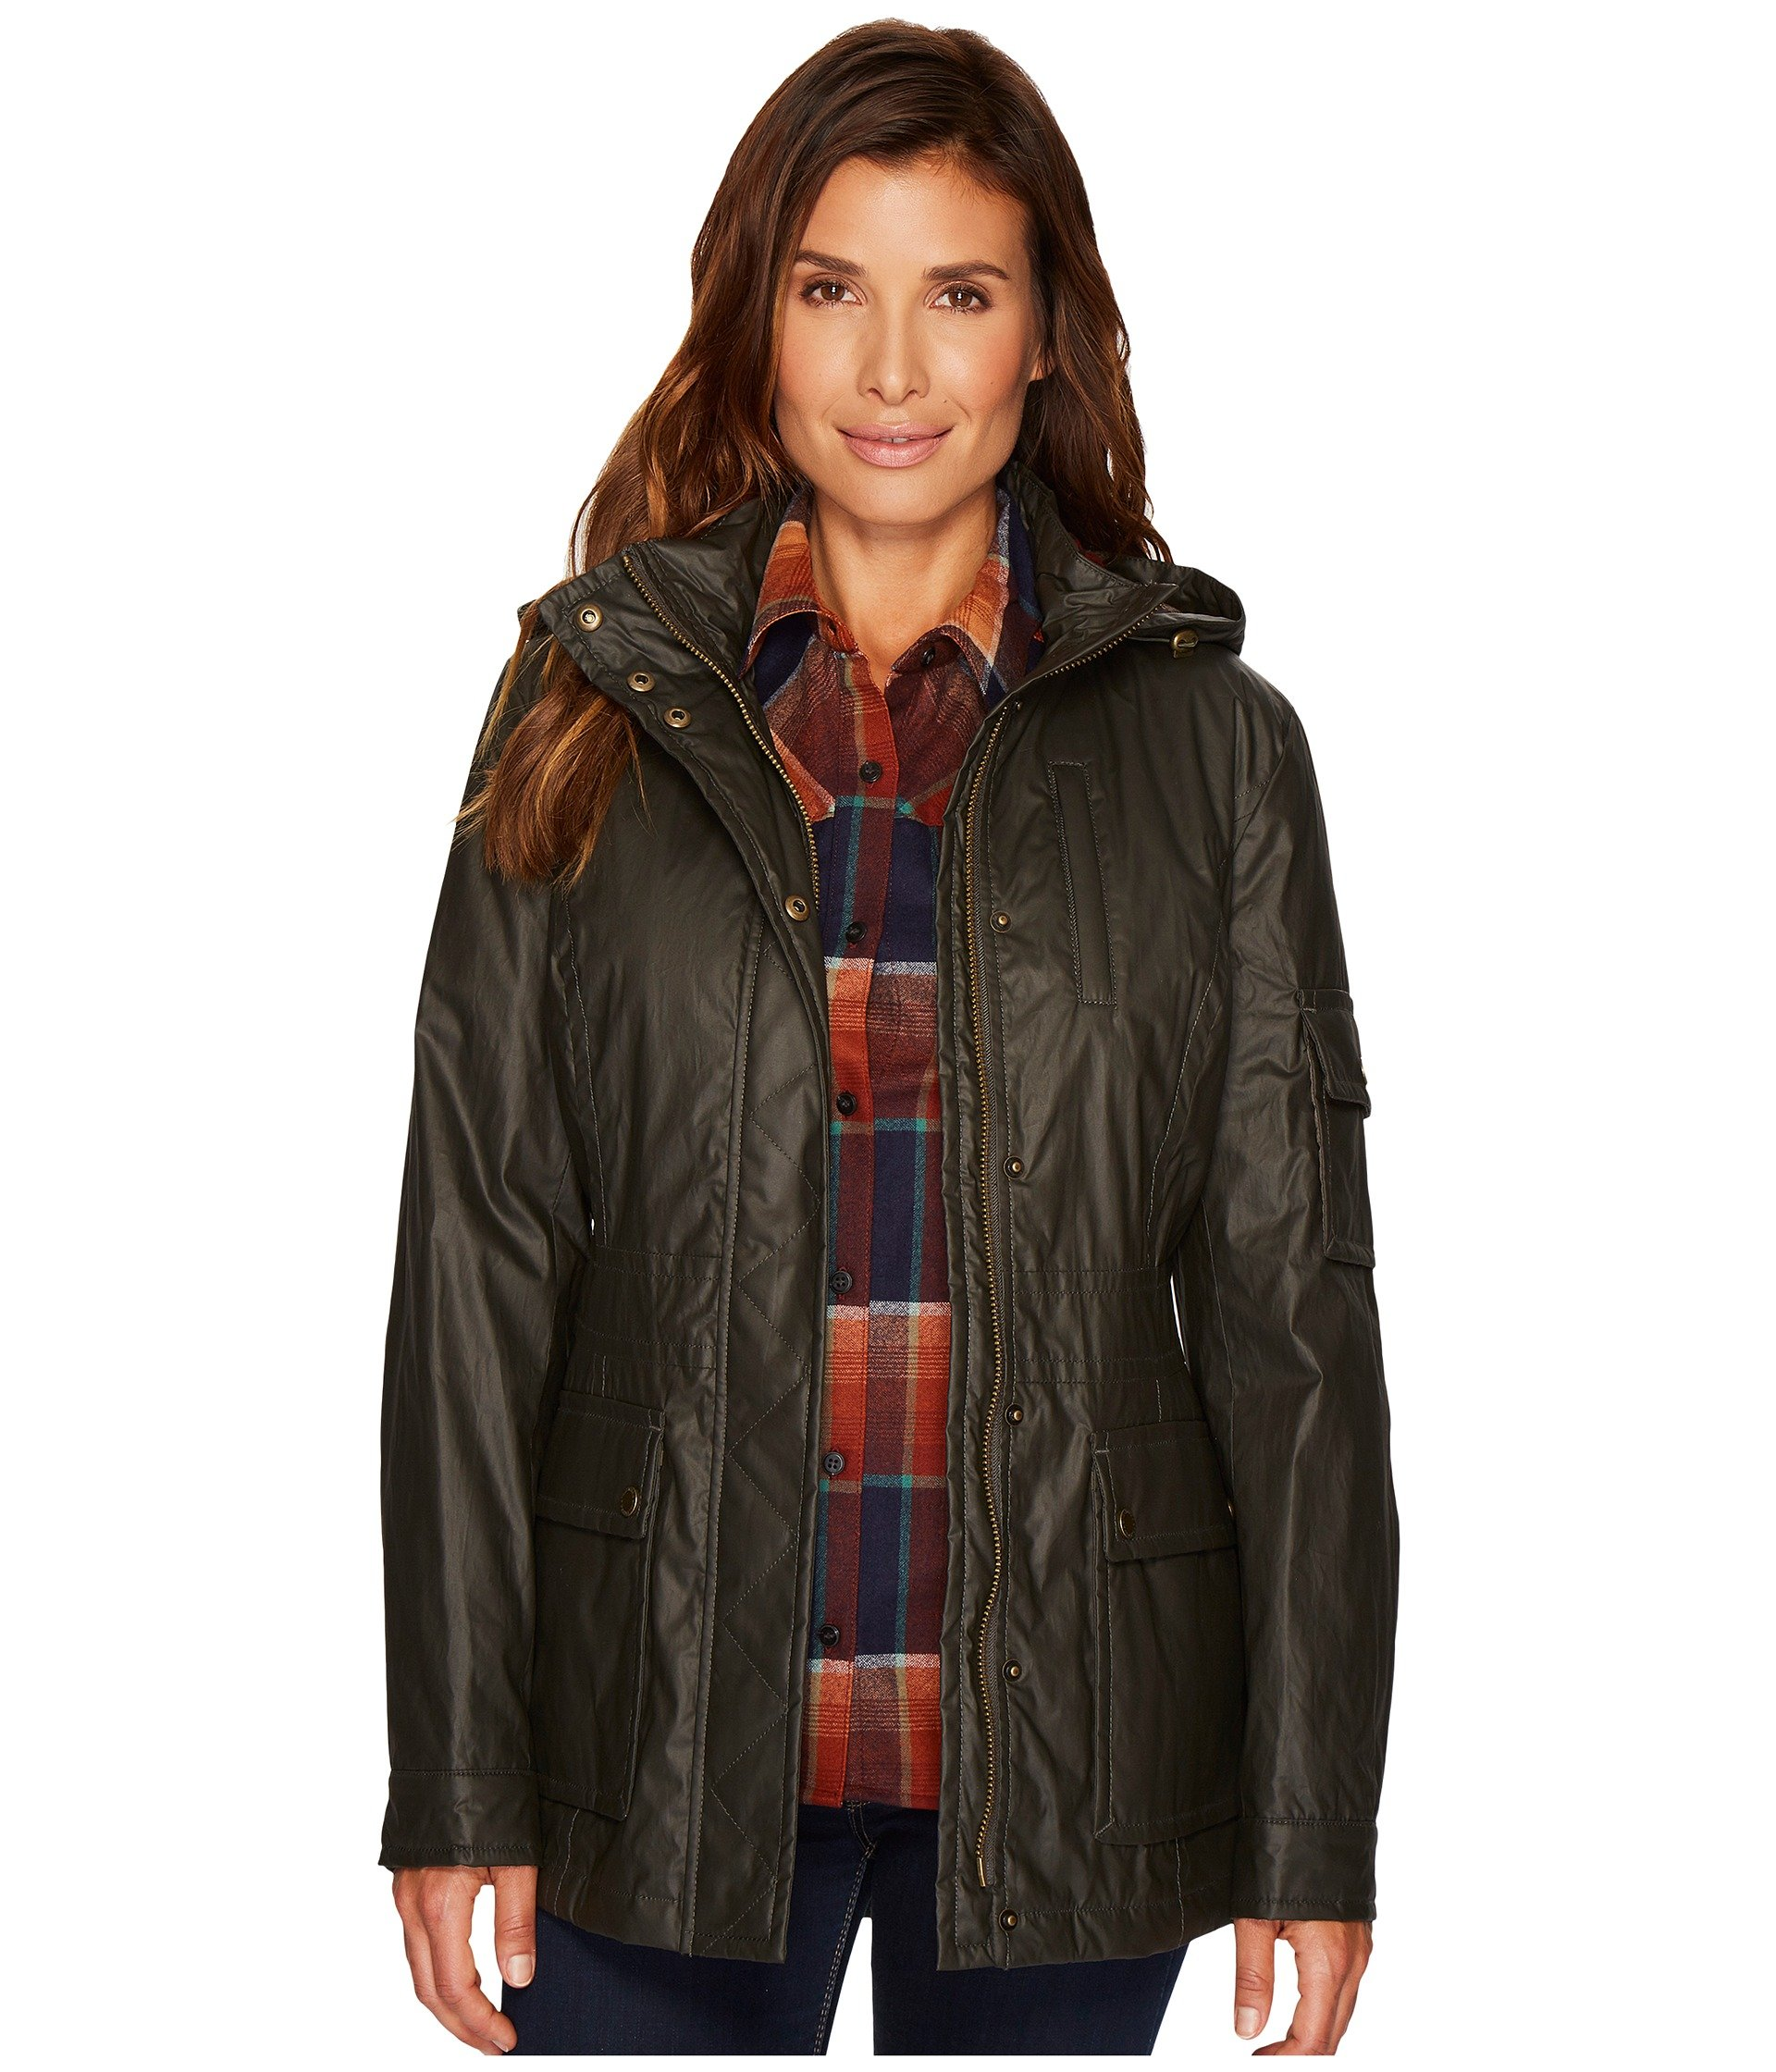 Pendleton Women's Waxed Cotton Hooded Zip Front Jacket, Olive, M by Pendleton (Image #1)